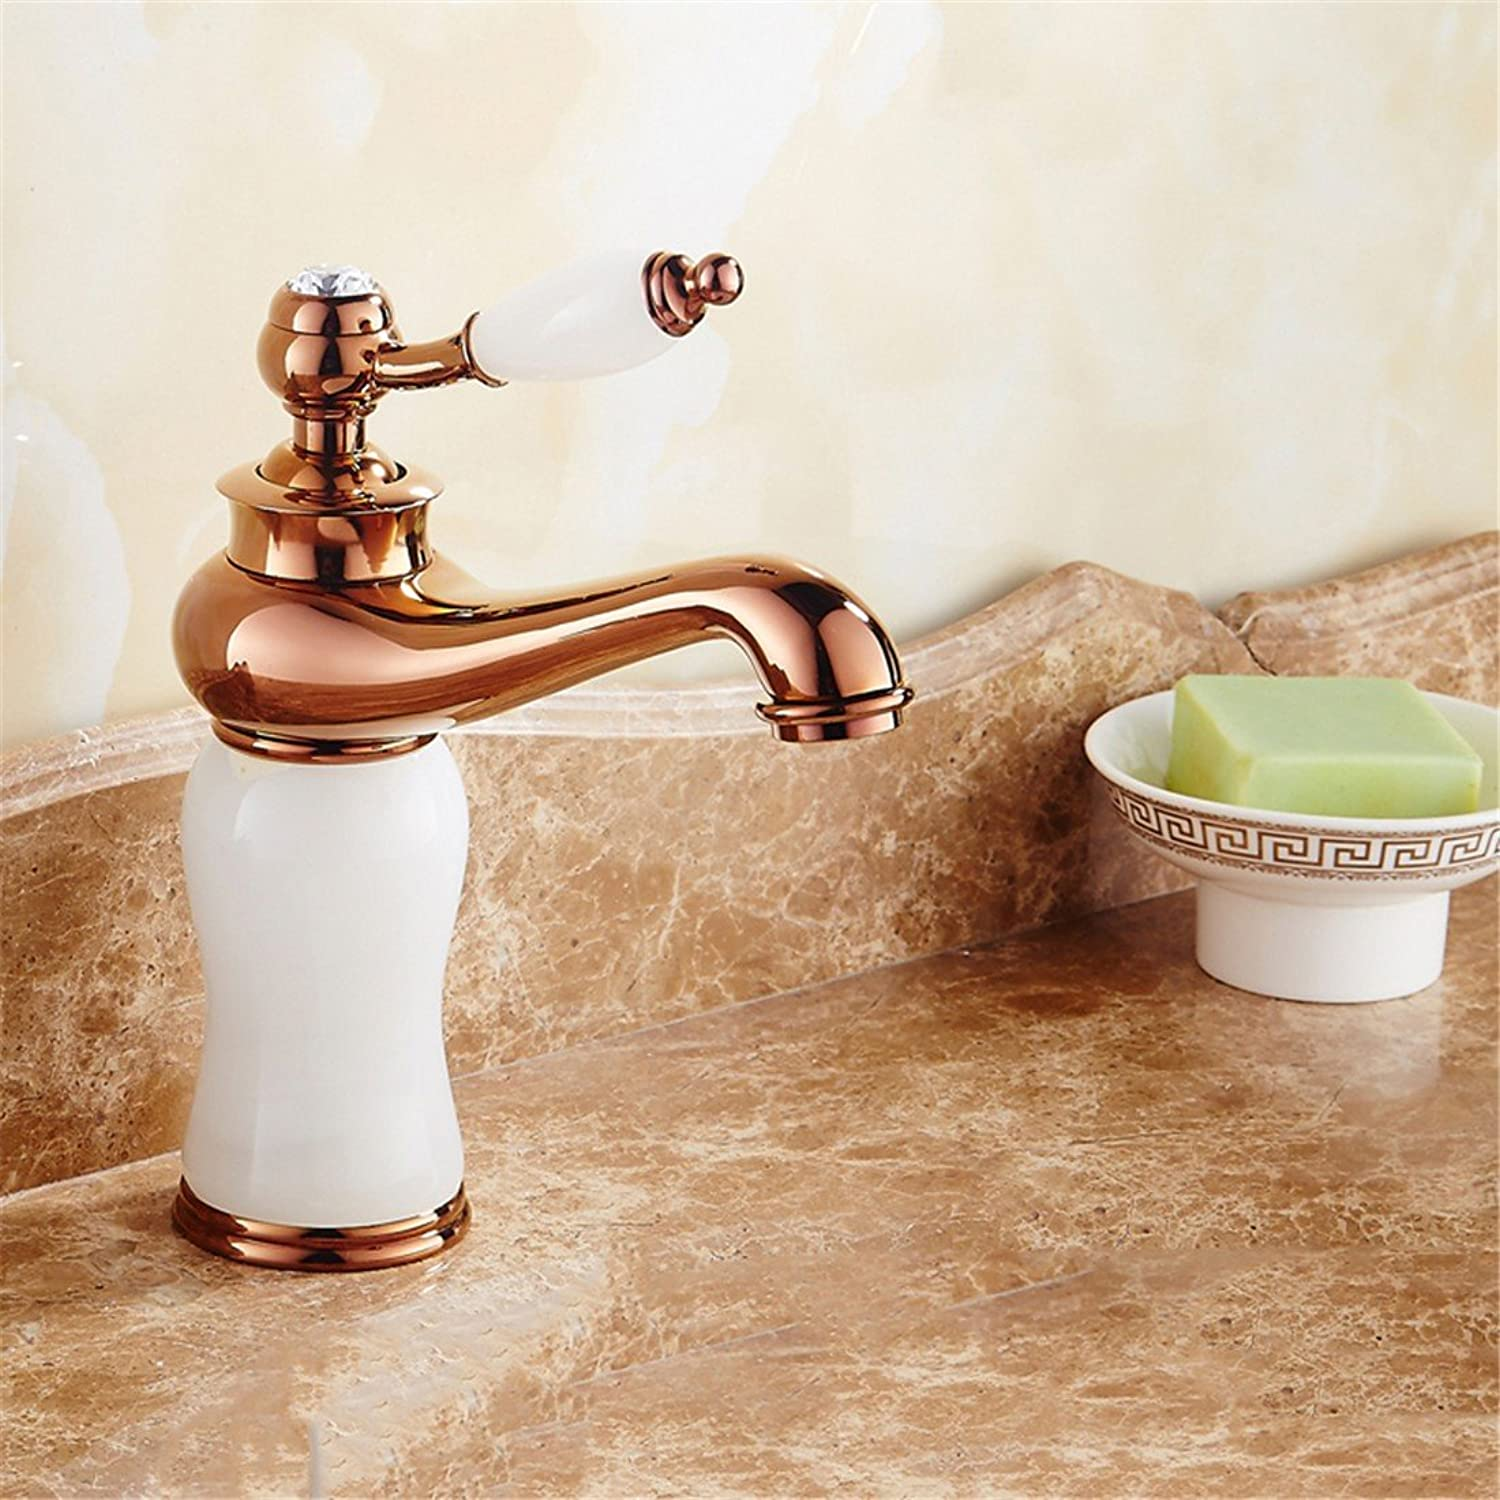 Fbict European-Style Faucet gold Basin hot and Cold bluee Jade Marble Basin Faucet Copper washbasin Faucet, Classic White Jade (pink gold) for Kitchen Bathroom Faucet Bid Tap